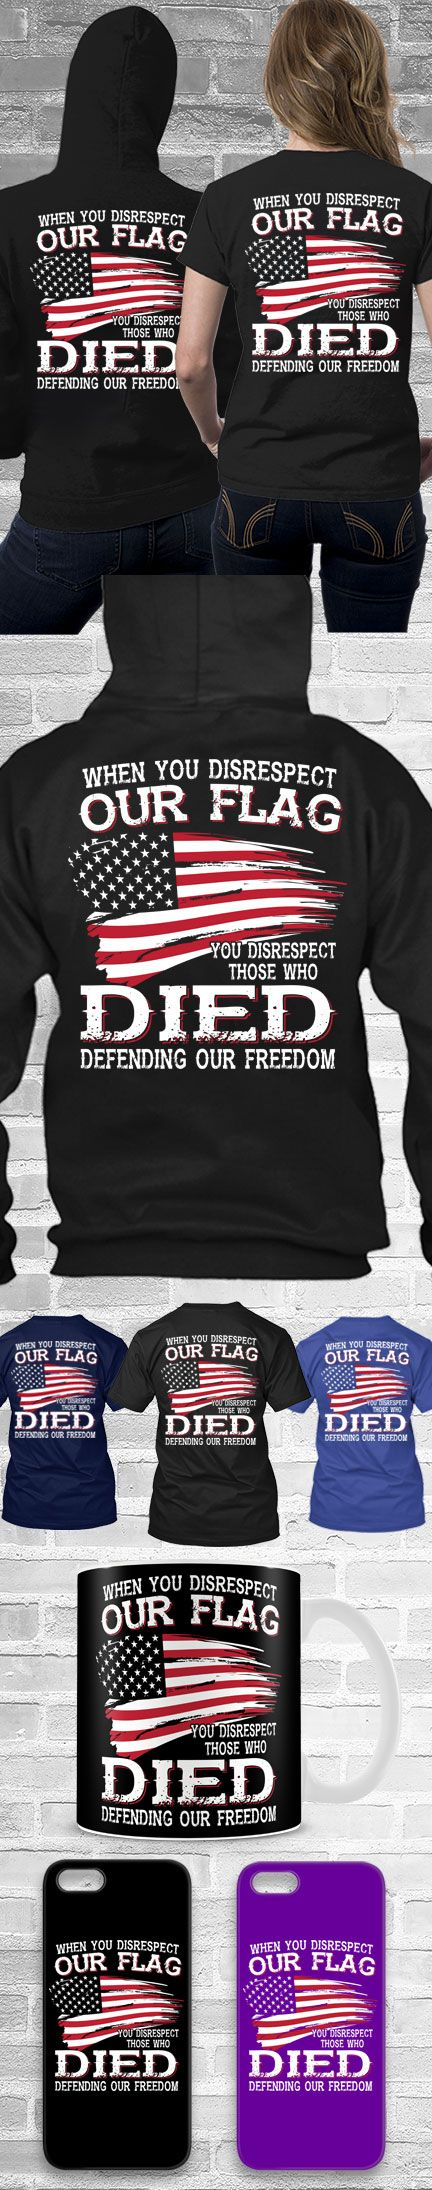 Respect Our Flag Shirts! Click The Image To Buy It Now or Tag Someone You Want To Buy This For.  #USA